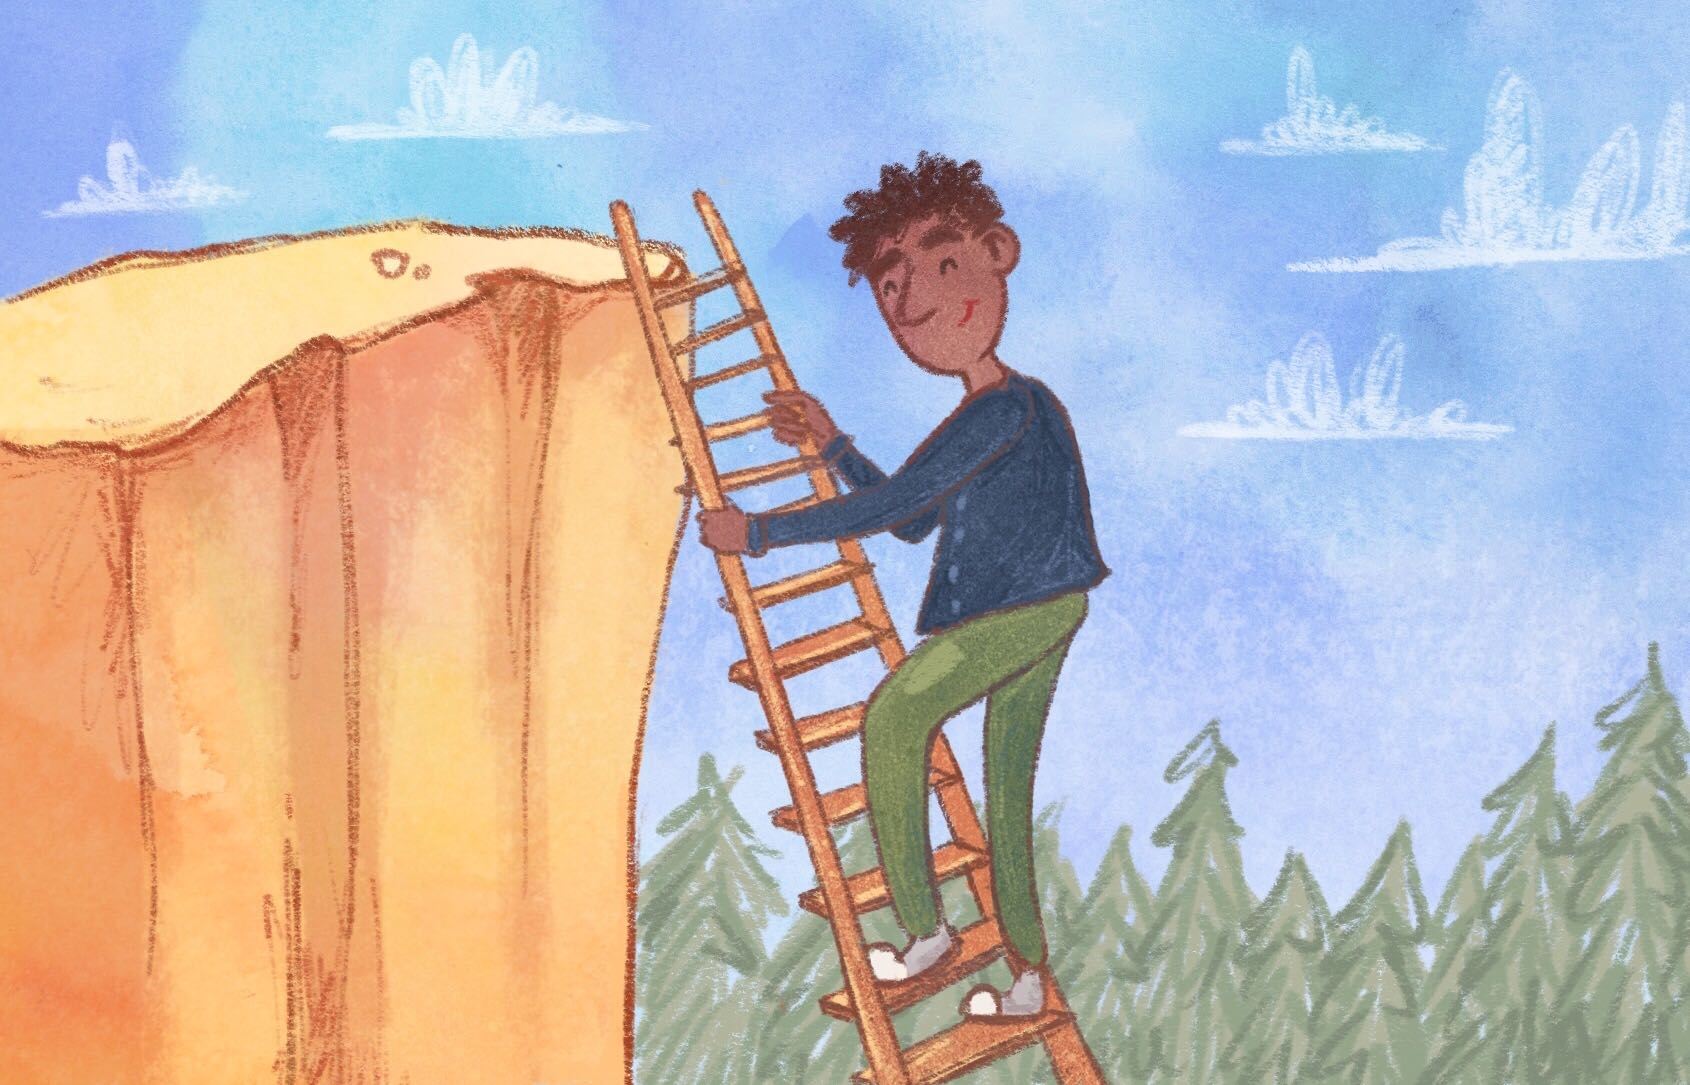 How to Use Your Career Ladder